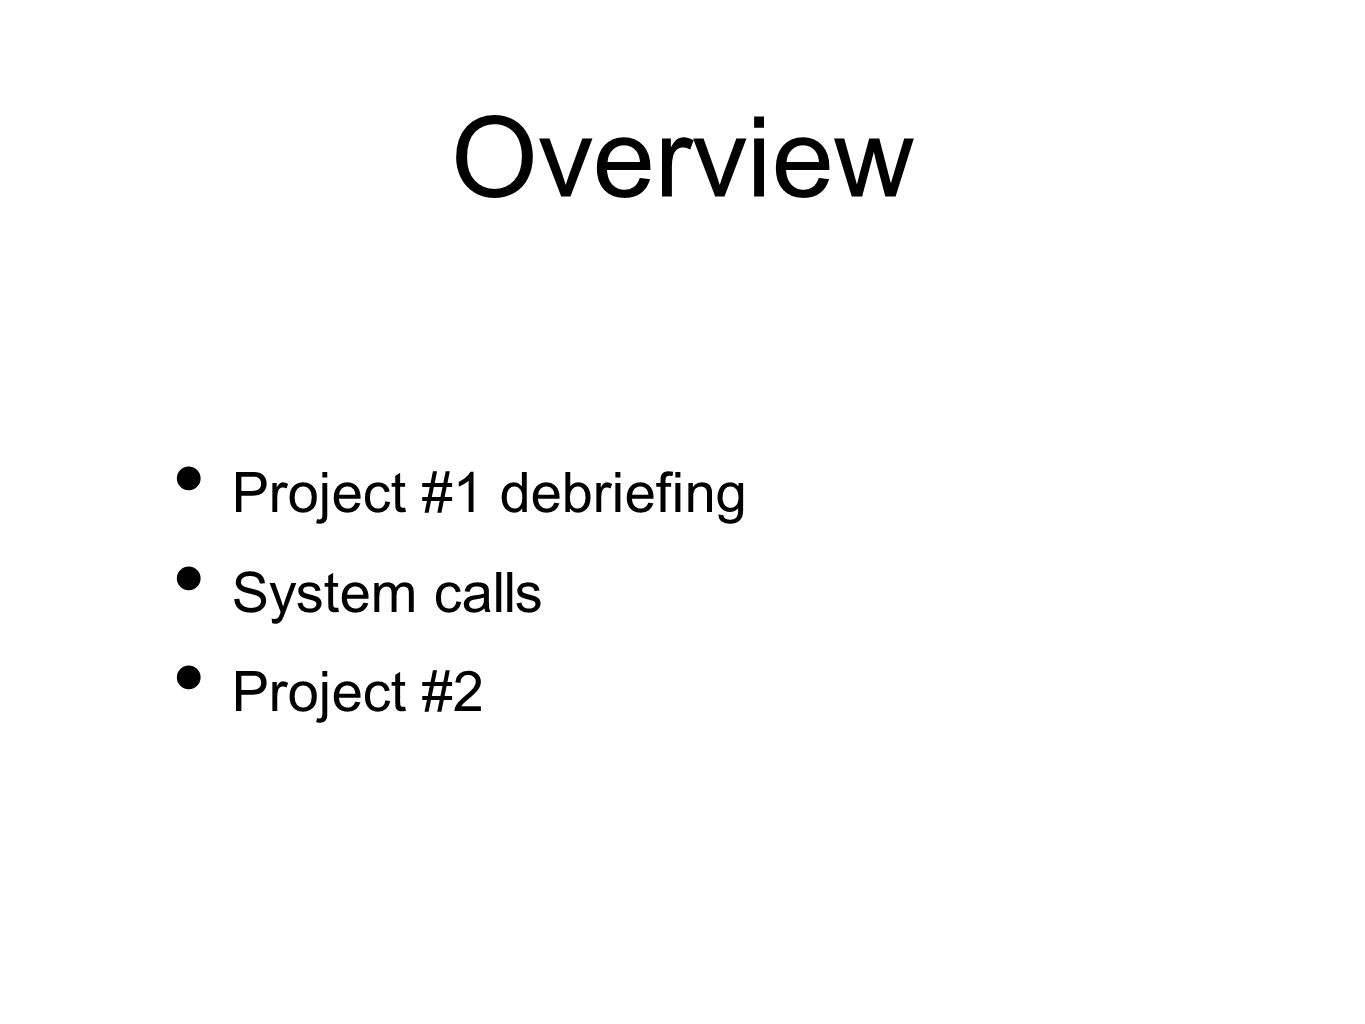 Overview Project #1 debriefing System calls Project #2